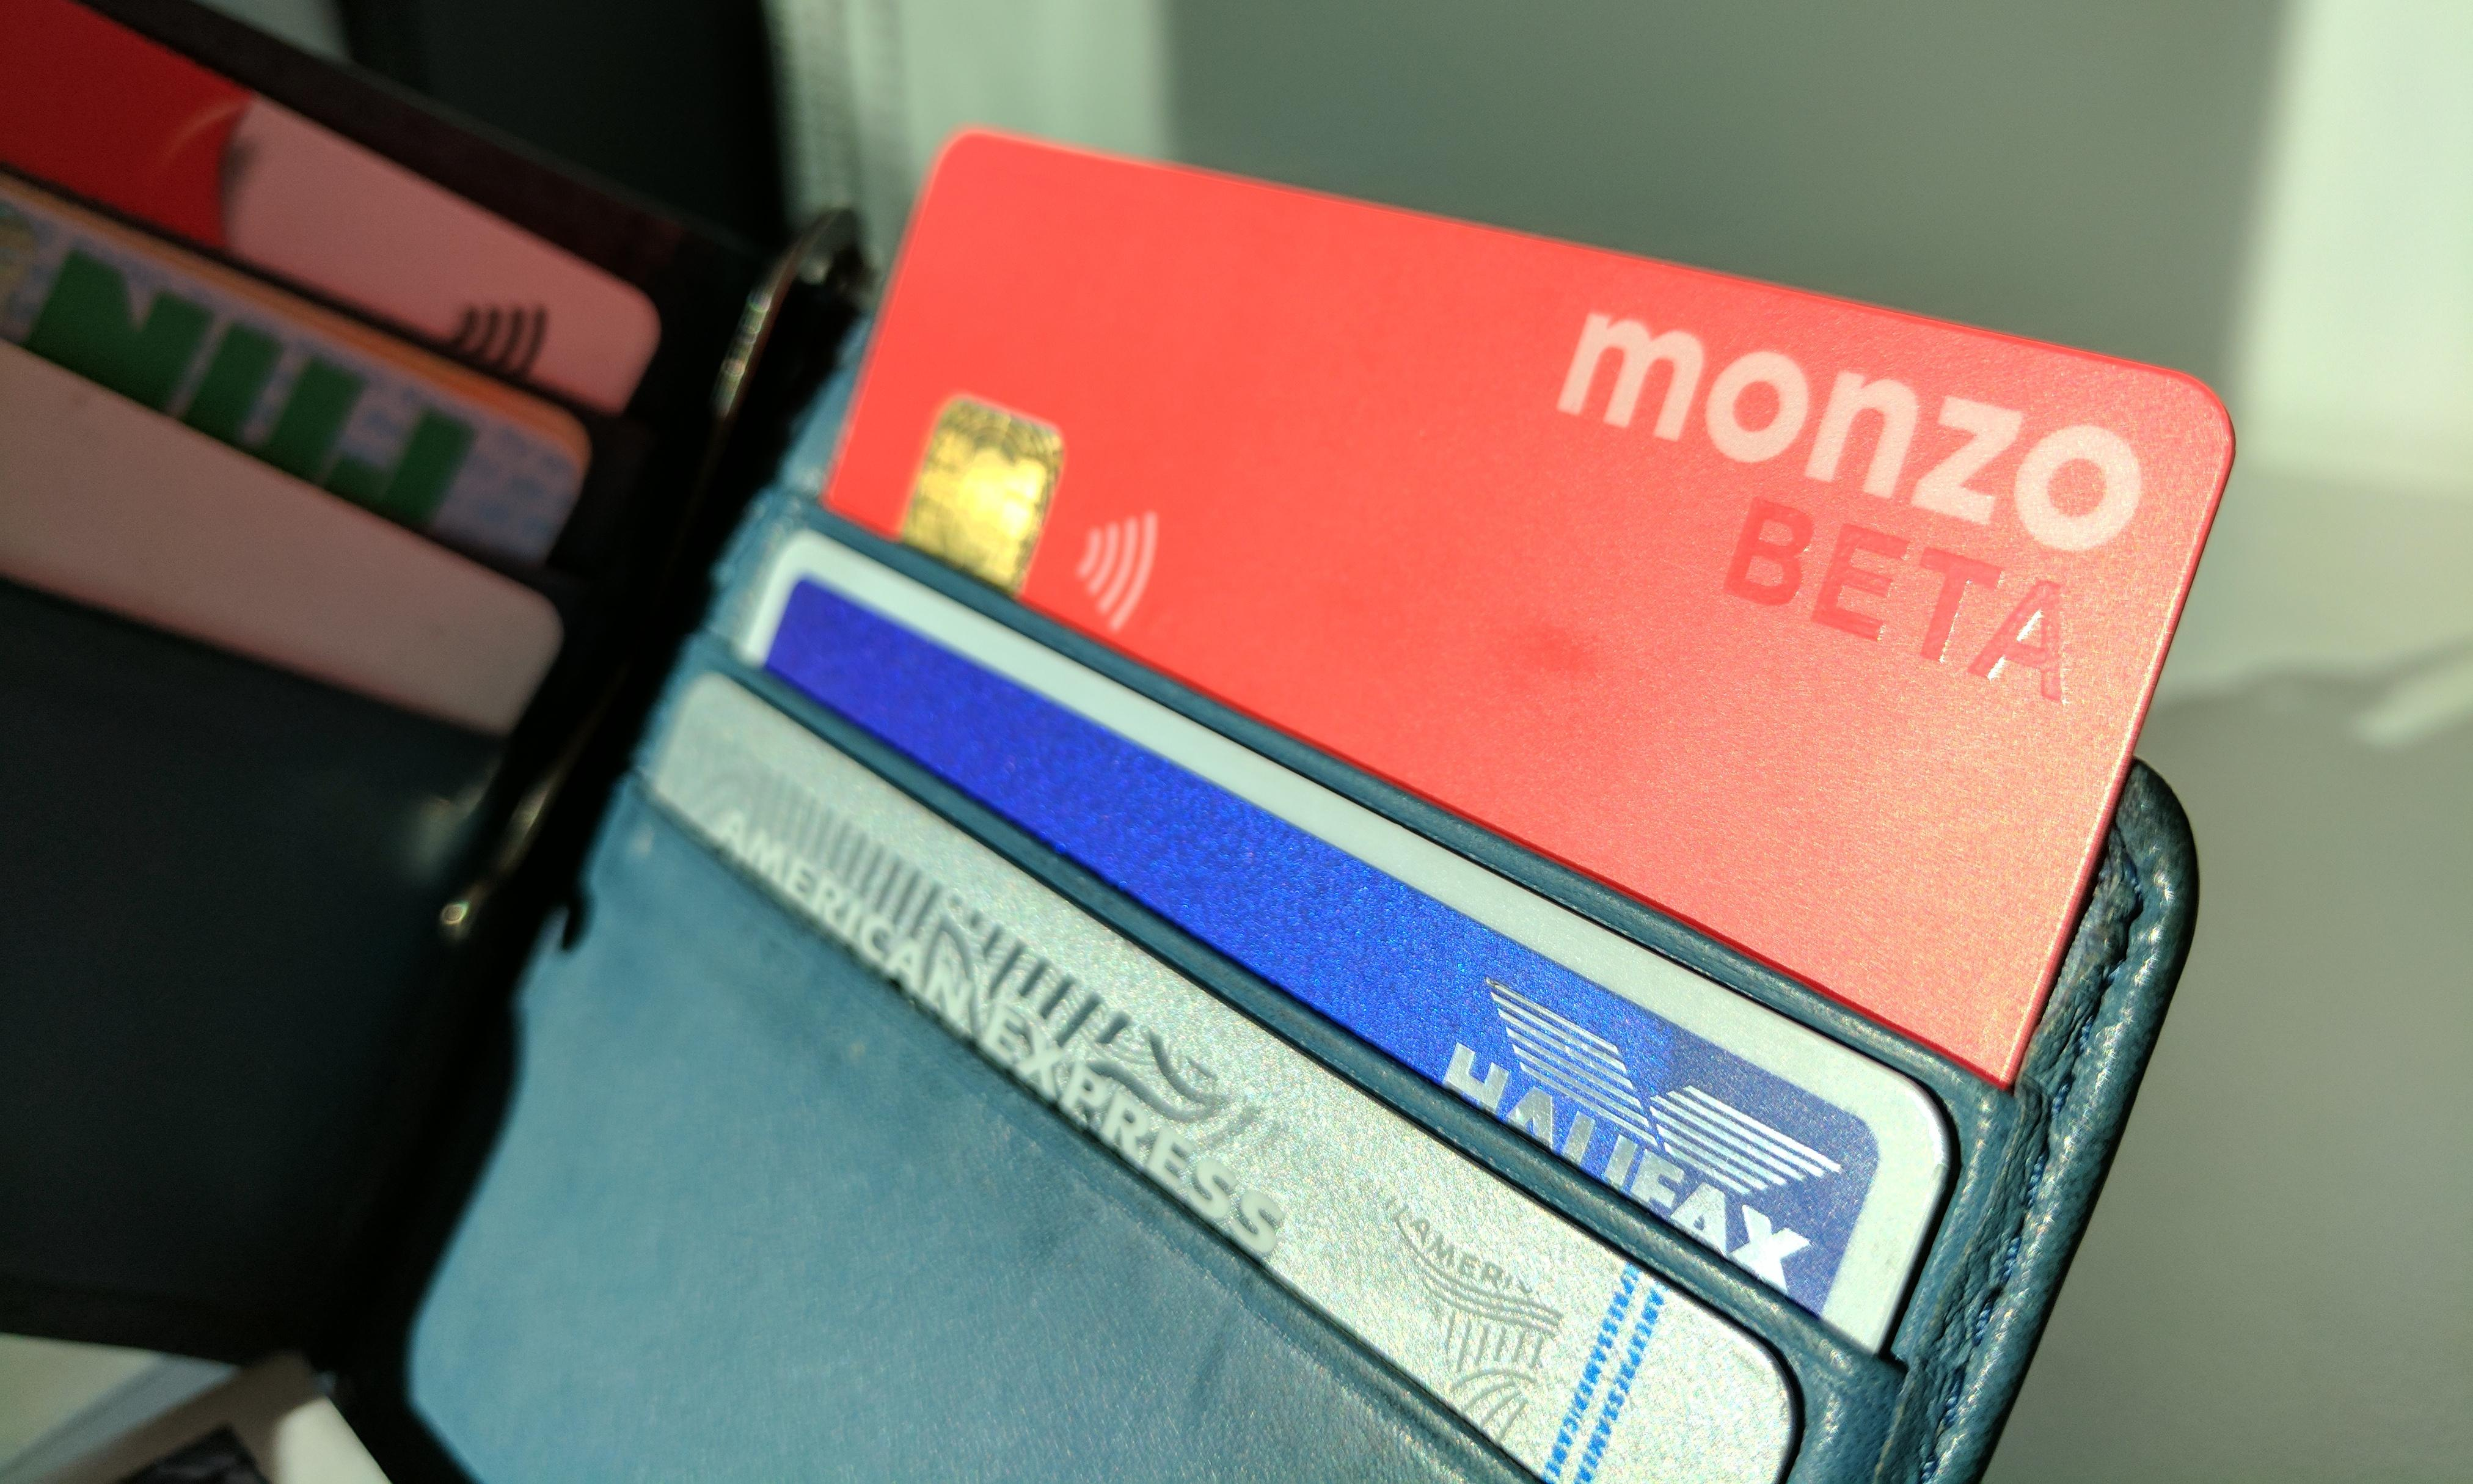 Monzo digital bank could double value to £2bn with new US stake